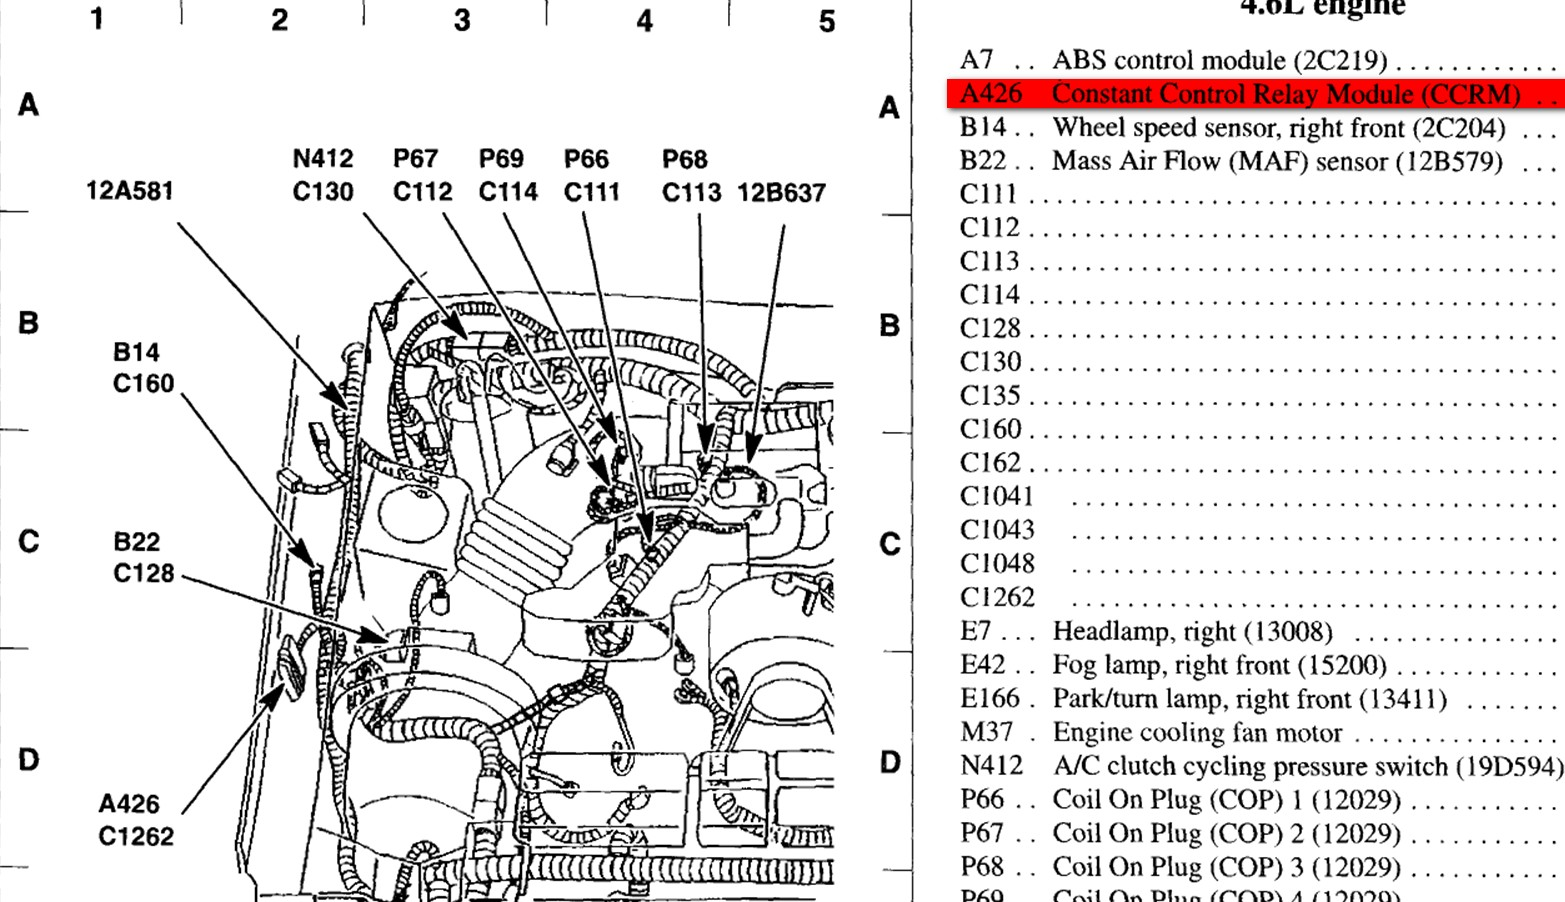 2002 ford mustang fuel pump wiring diagram YWYStGn ford mustang fuel pump relay location image details 2000 ford mustang gt fuel pump wiring diagram at cos-gaming.co